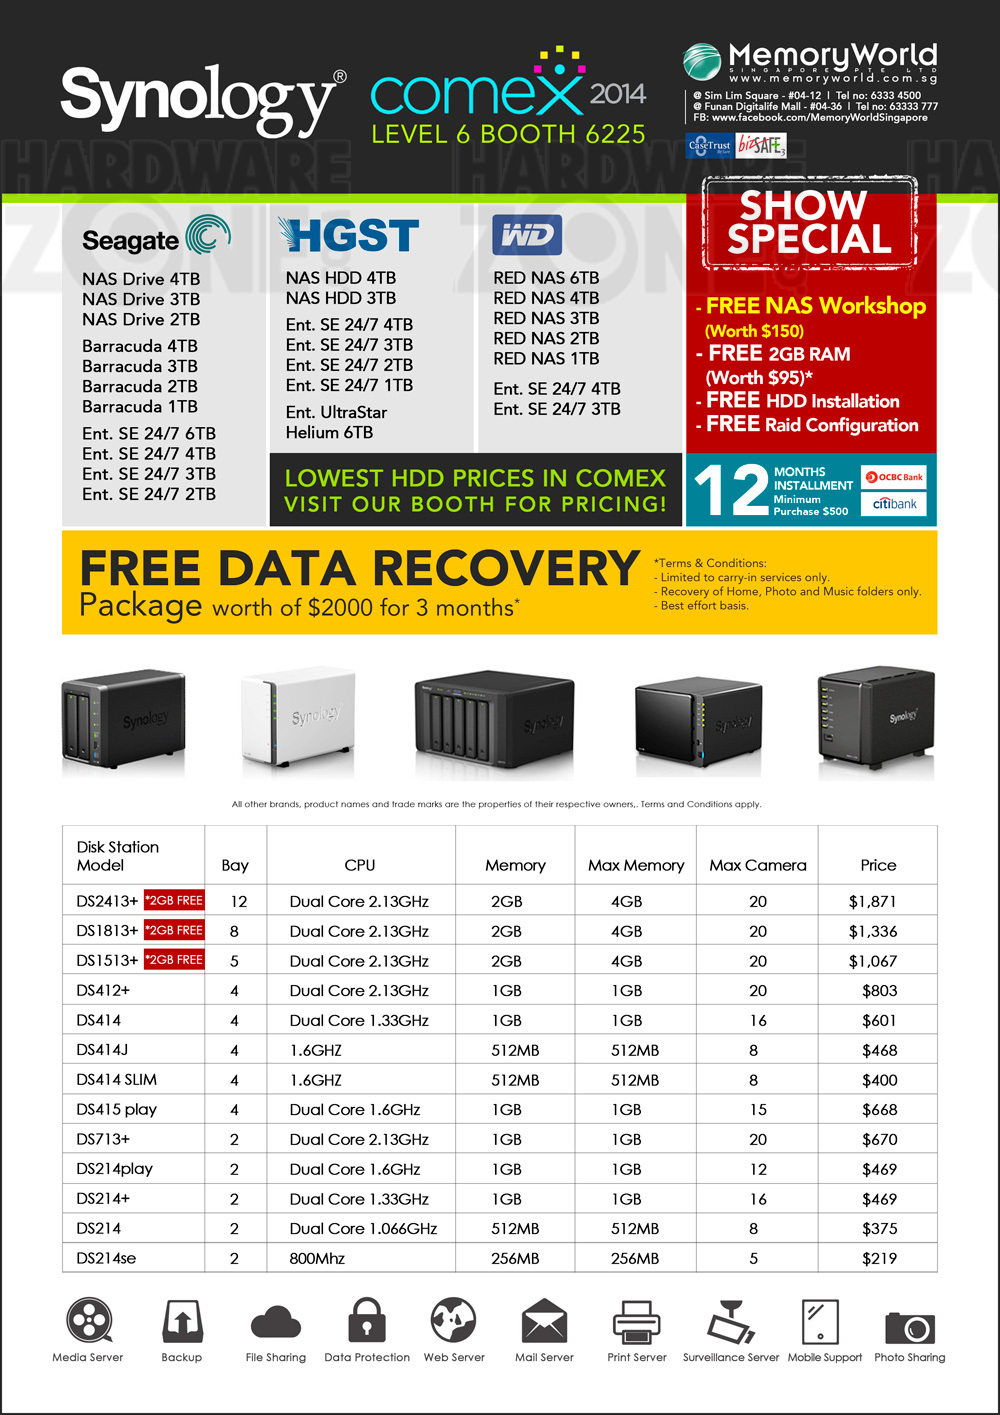 Synology - page 5 Brochures from COMEX 2014 Singapore on